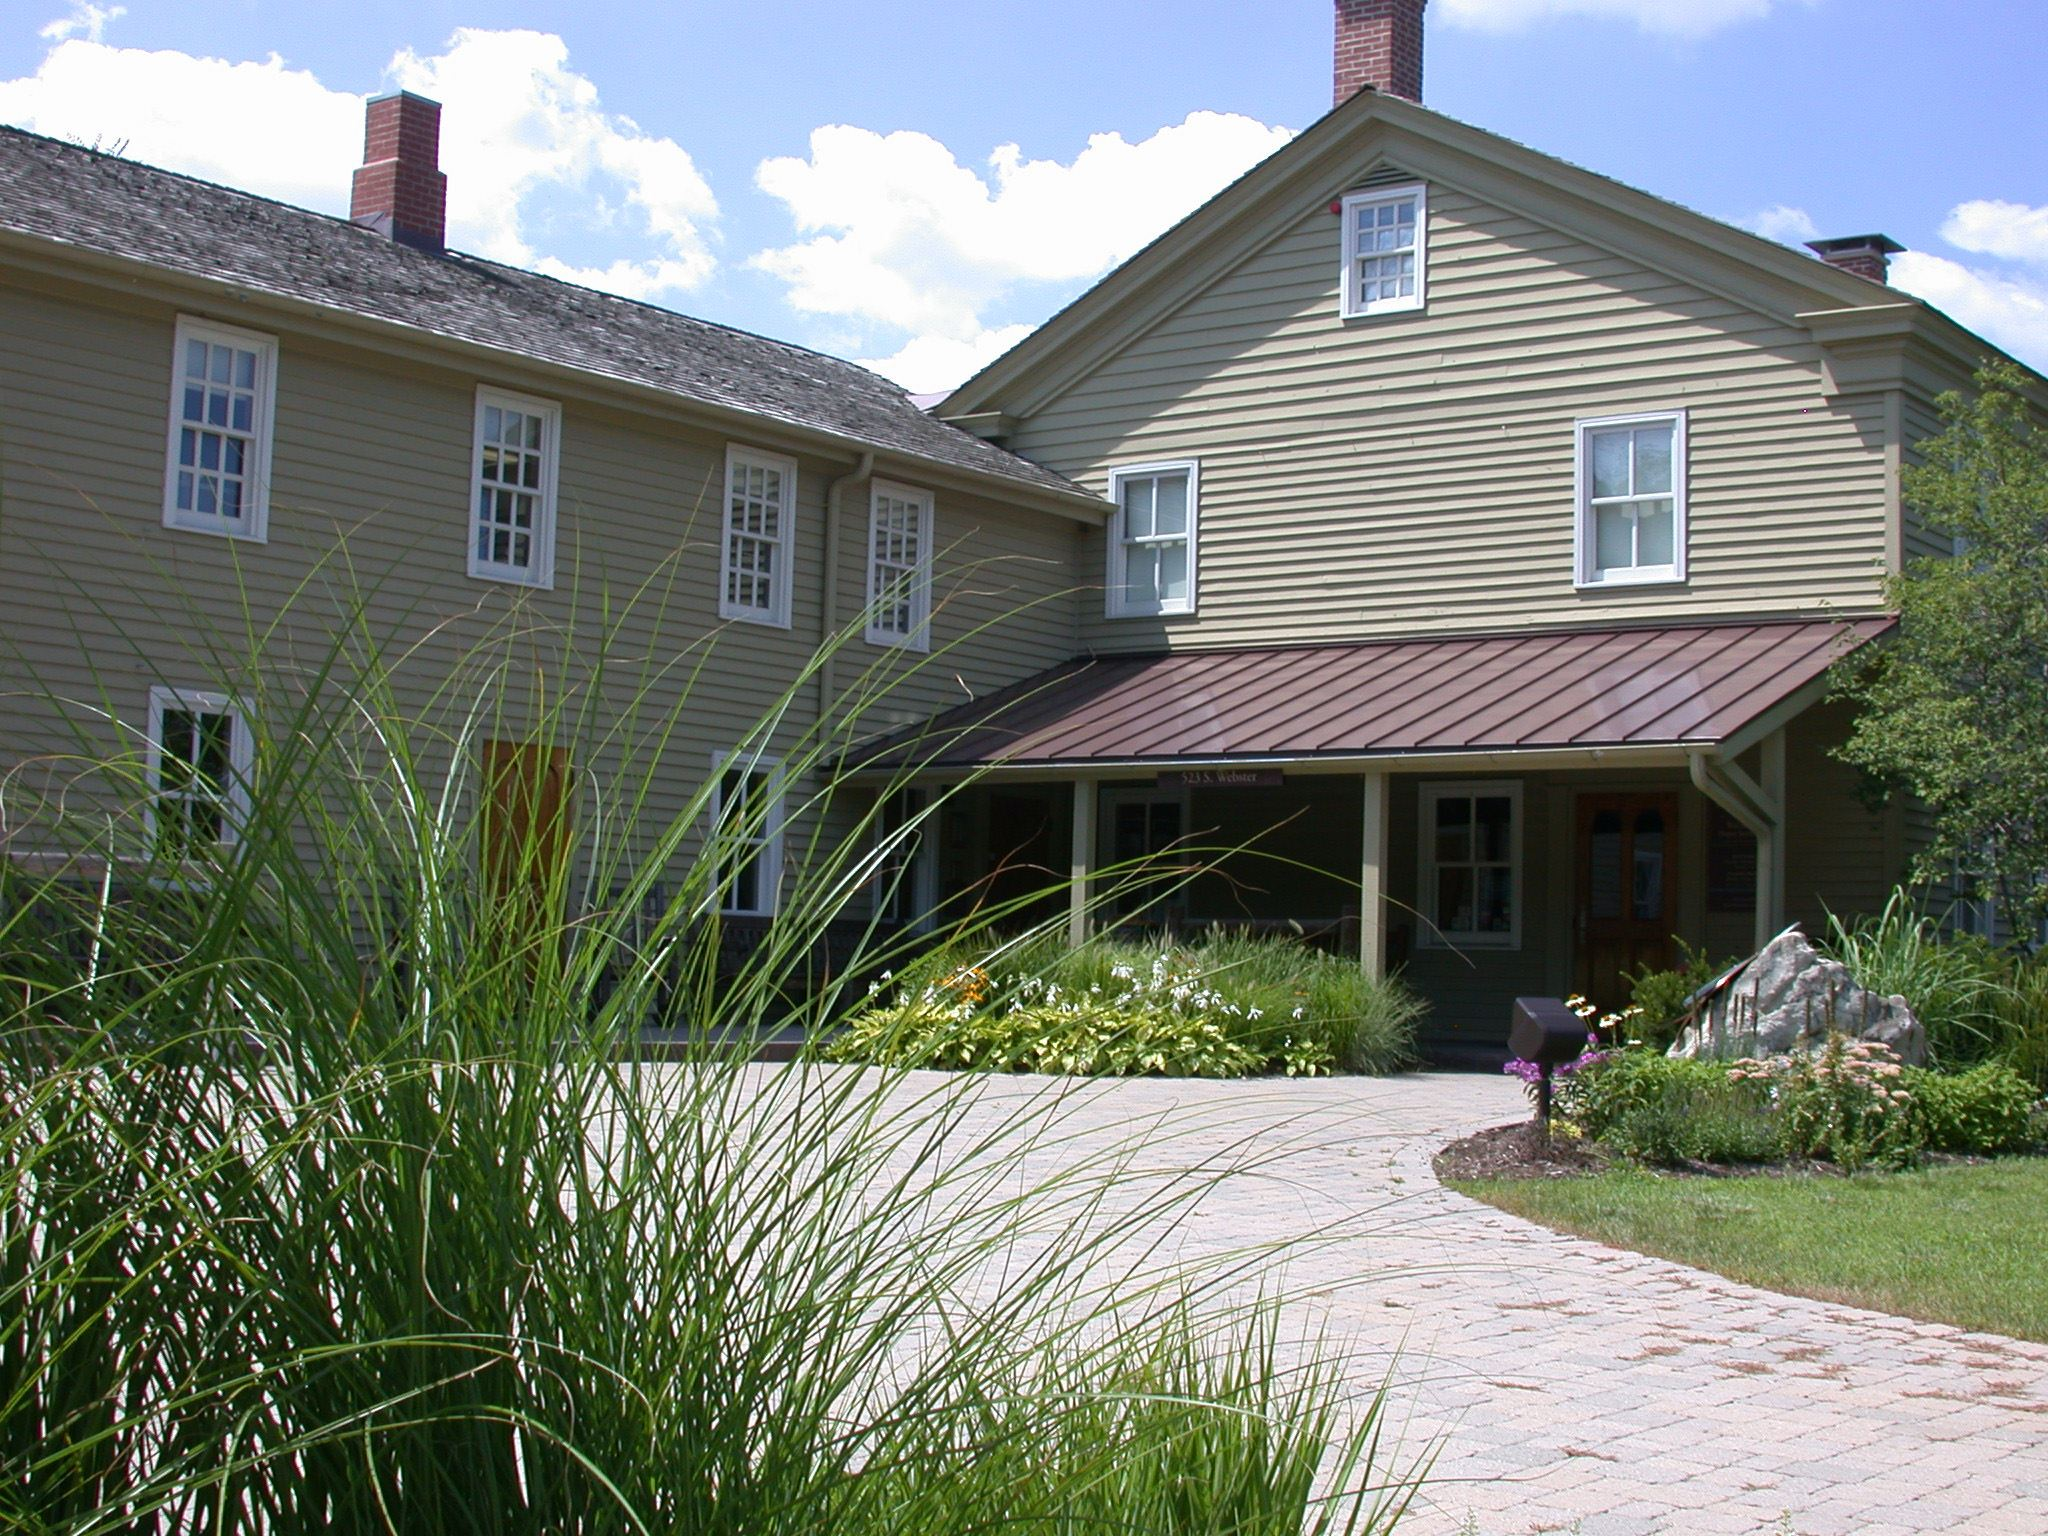 exterior view of Pre-Emption House with grasses in foreground